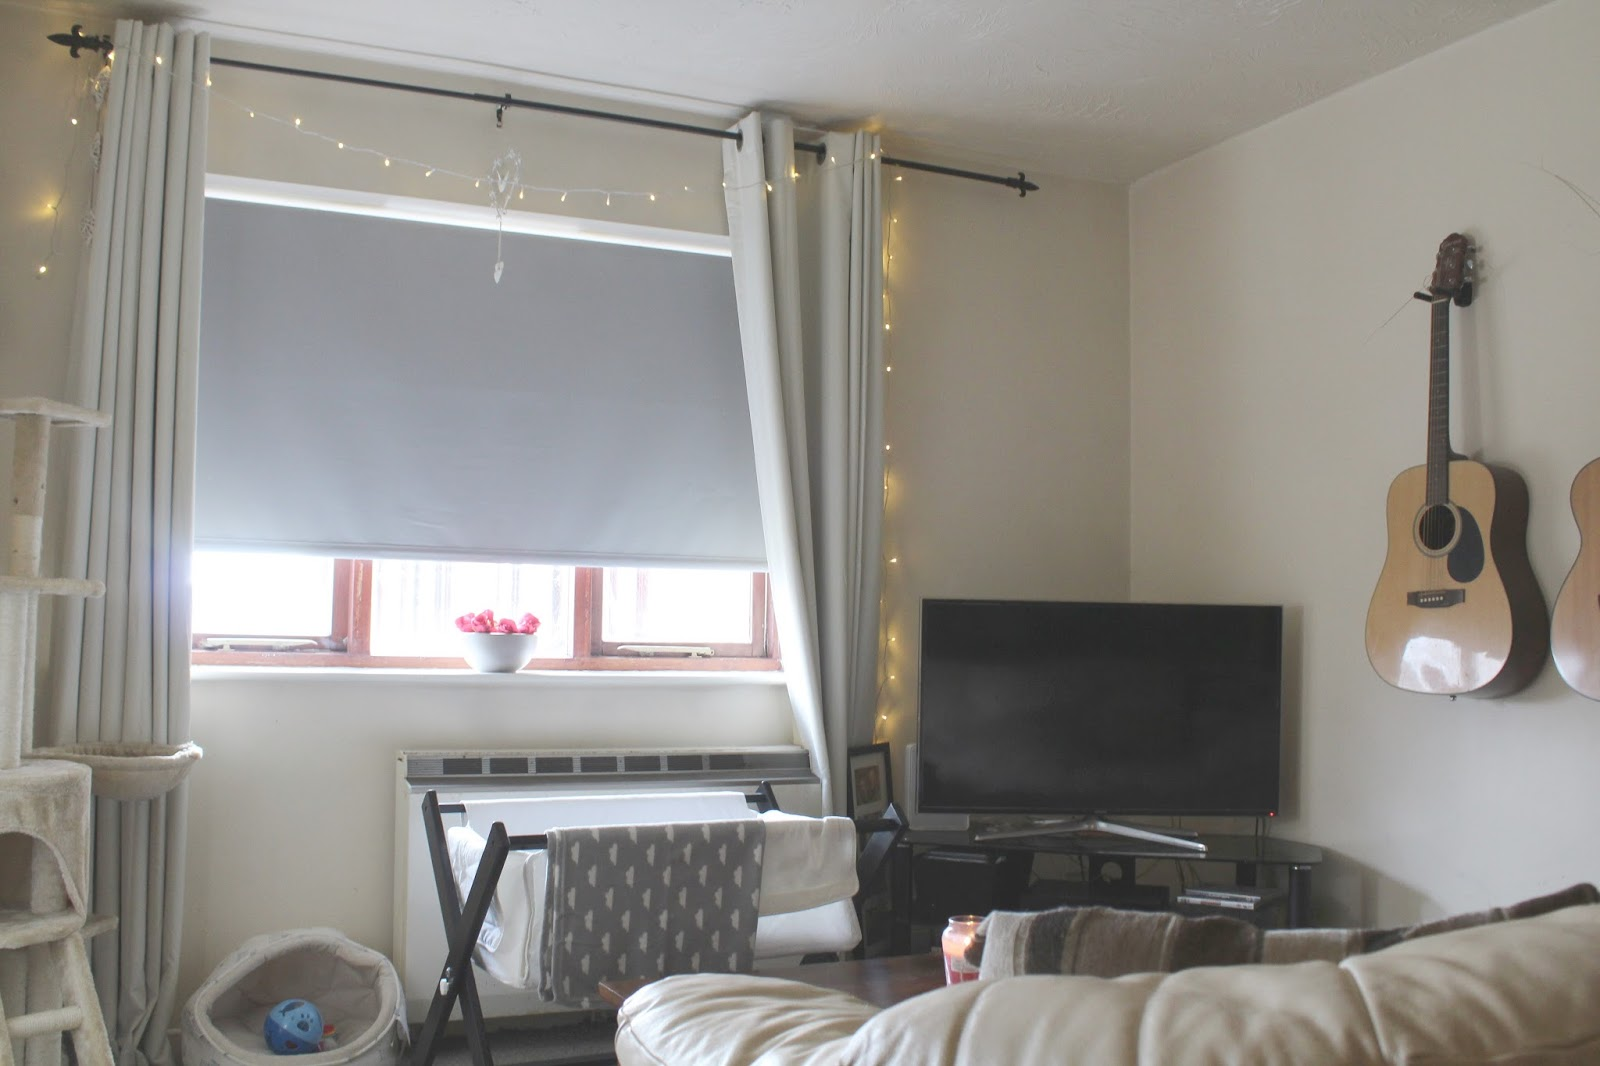 direct blinds grey roller blinds and fairy lights